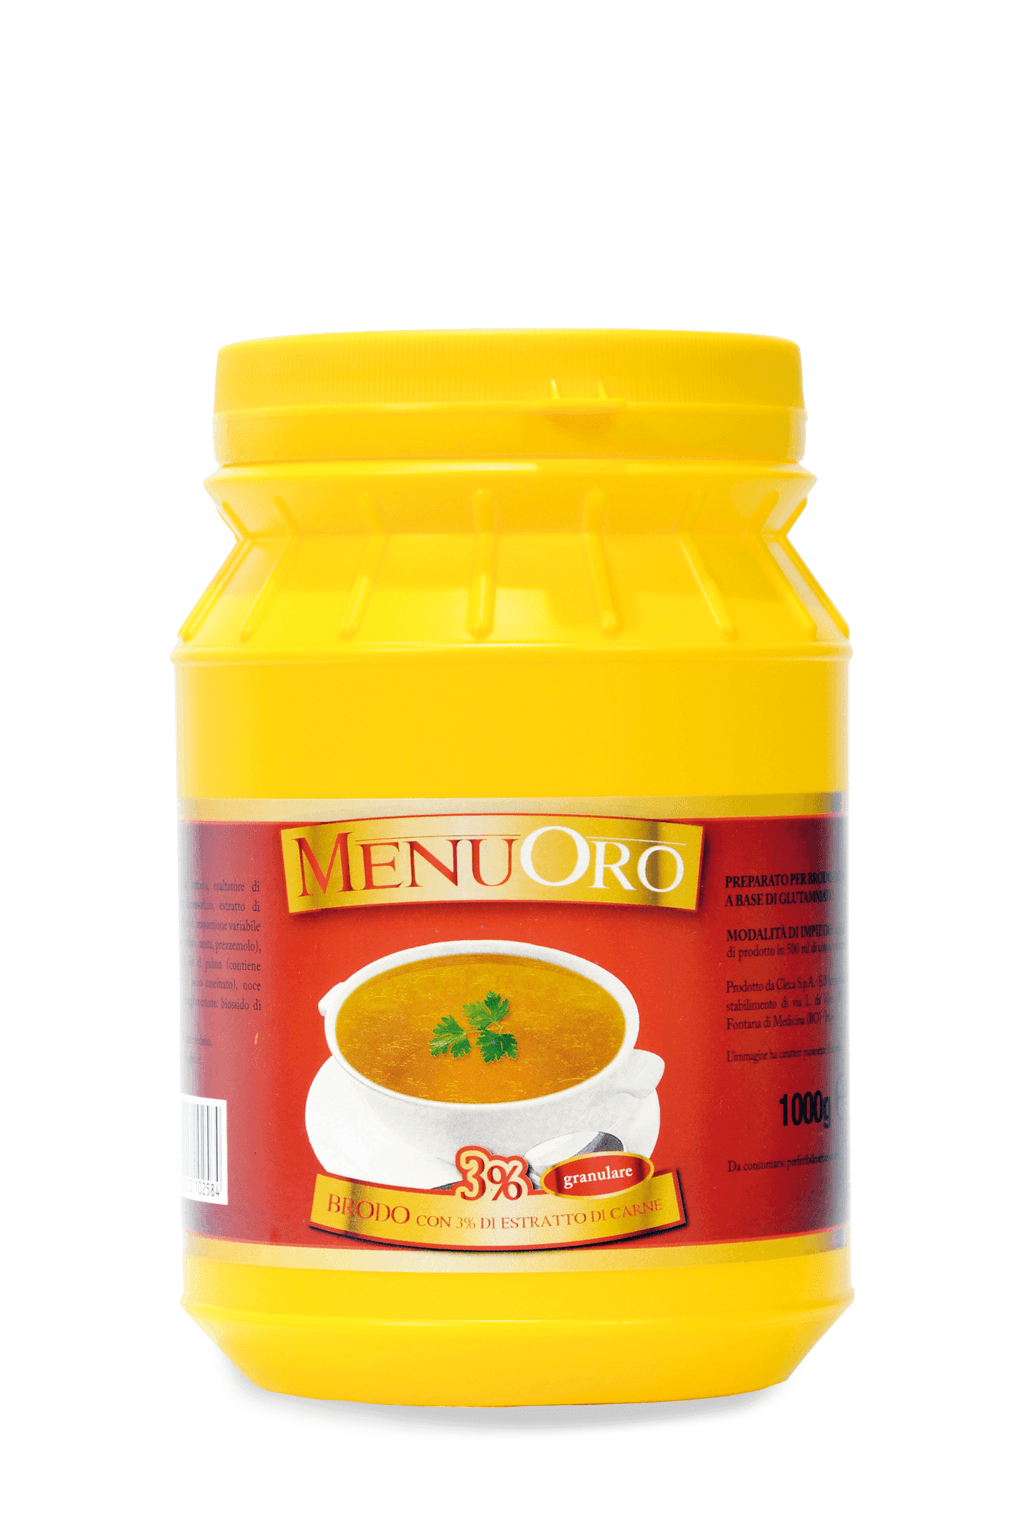 Meat Extract 3% granular broth 1 Kg